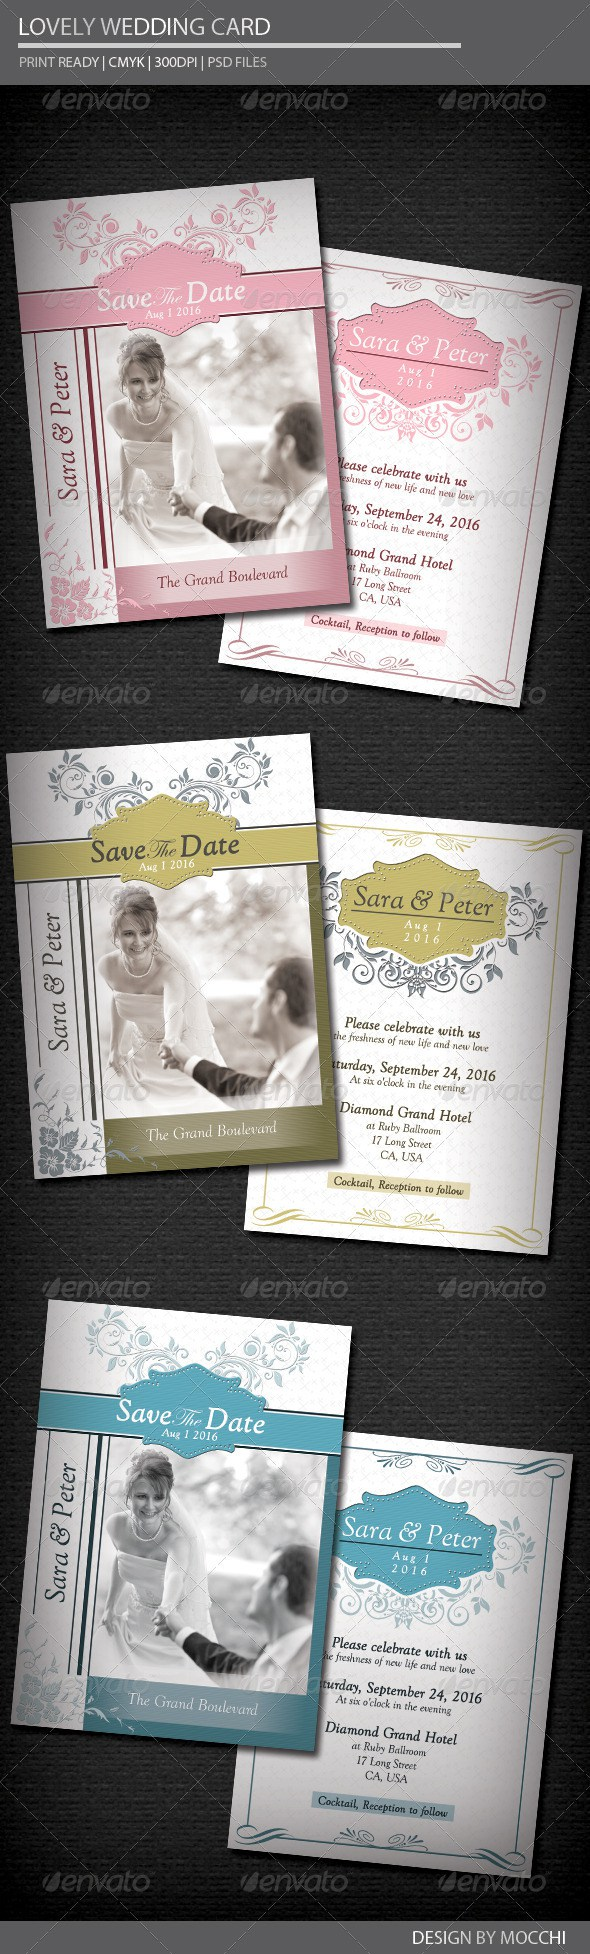 65+ Best Wedding Invitation Templates - PSD & InDesign | Pinterest